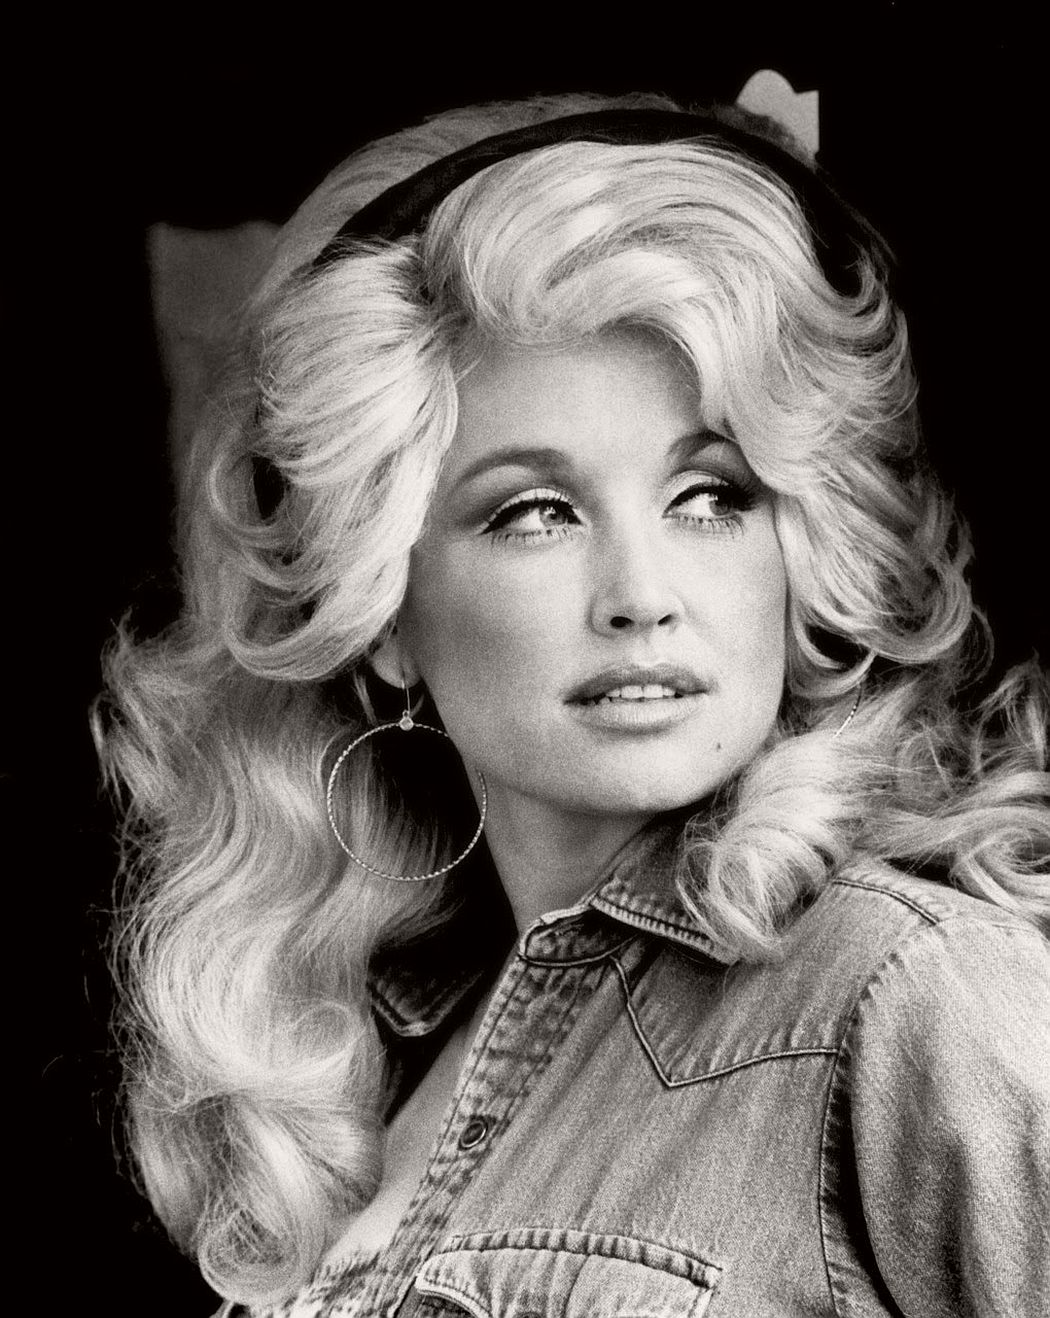 dolly-parton-in-the-1970s-vintage-portraits-01